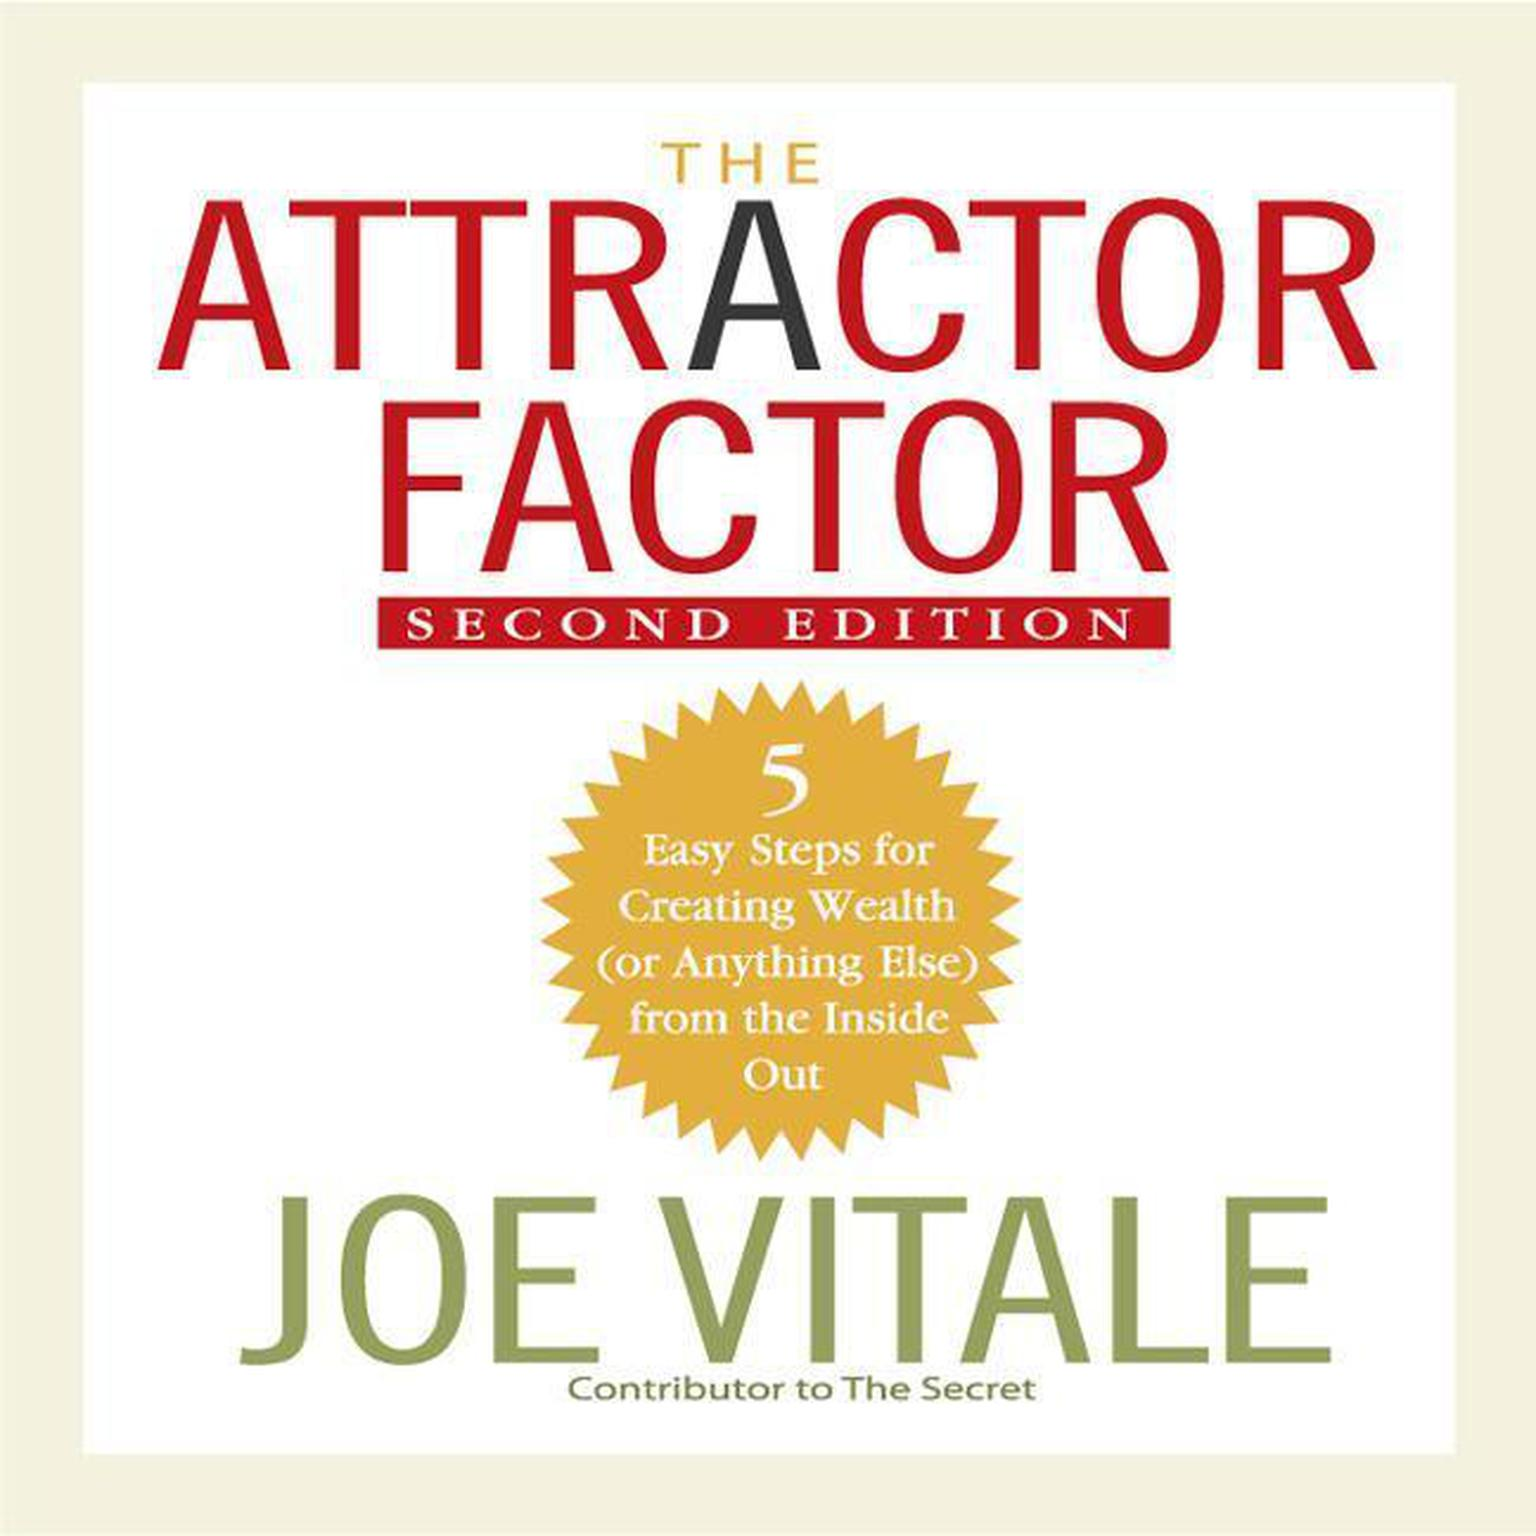 Printable The Attractor Factor, 2nd Edition: 5 Easy Steps For Creating Wealth (Or Anything Else) from the Inside Out Audiobook Cover Art